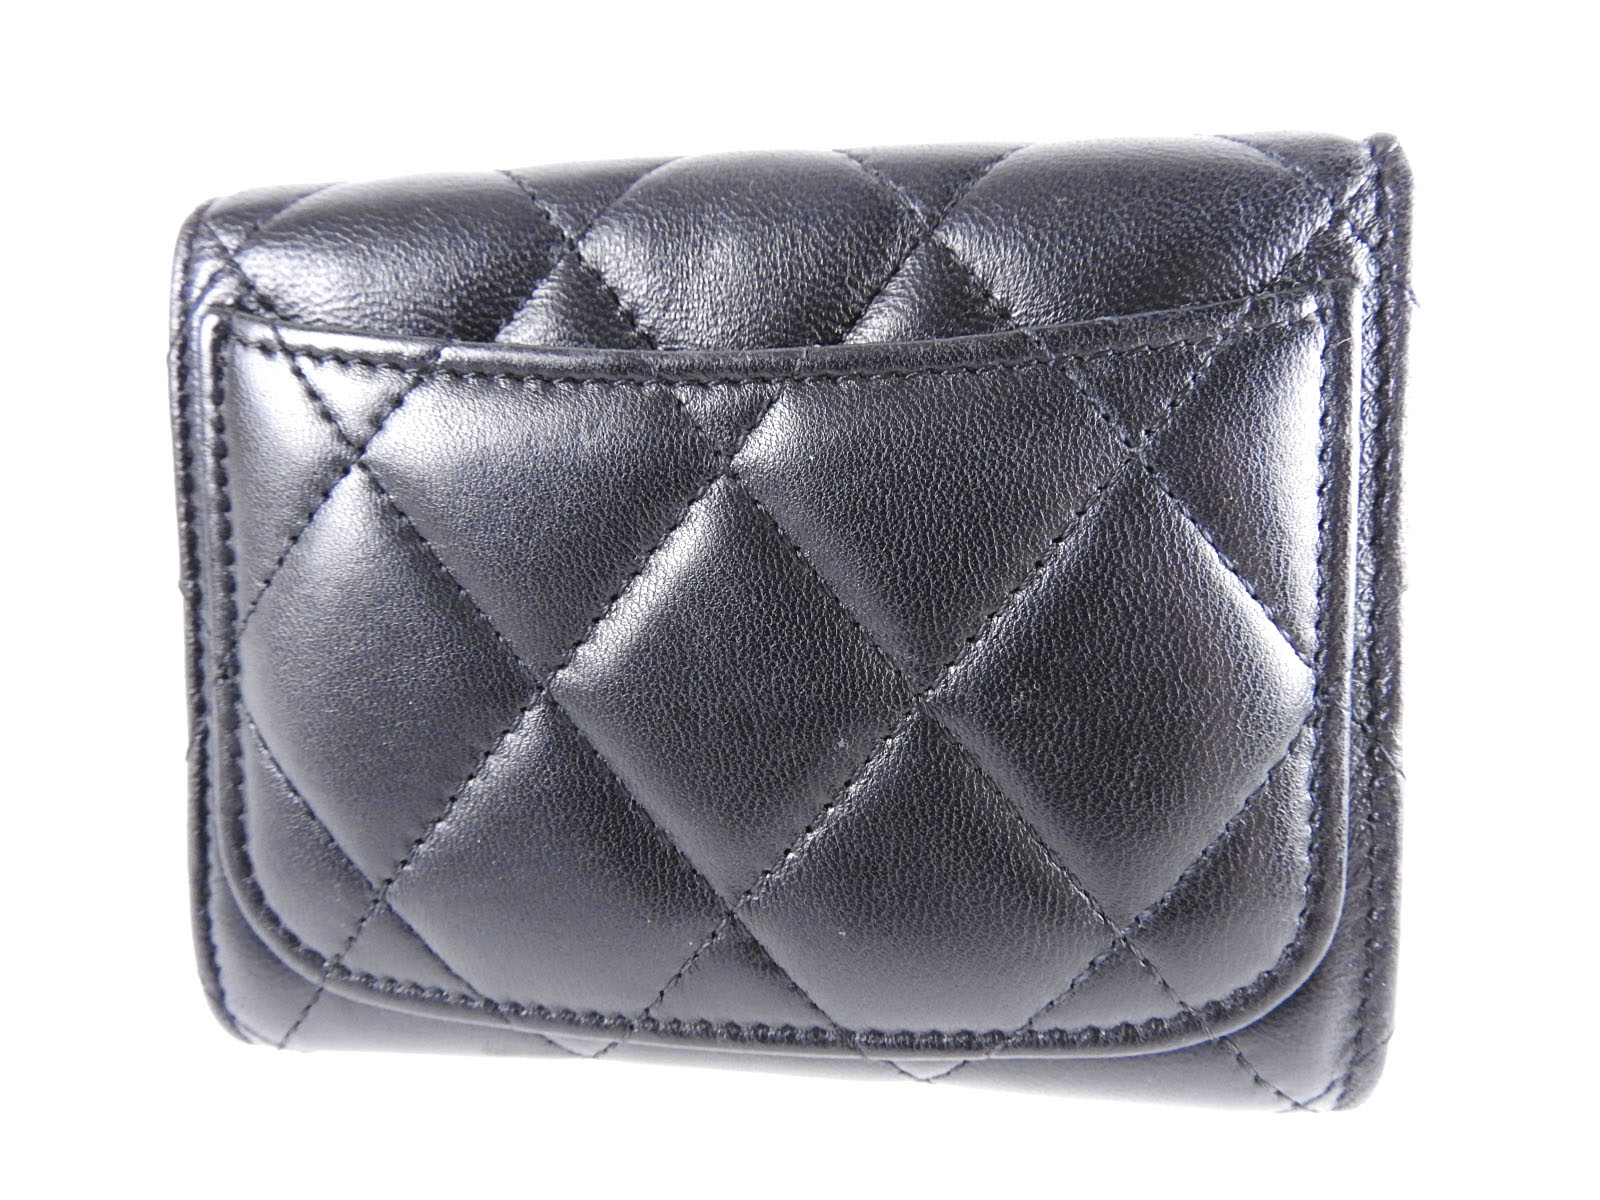 9e2c8c5dc19c Chanel Lambskin Coin Purse Images | Stanford Center for Opportunity ...